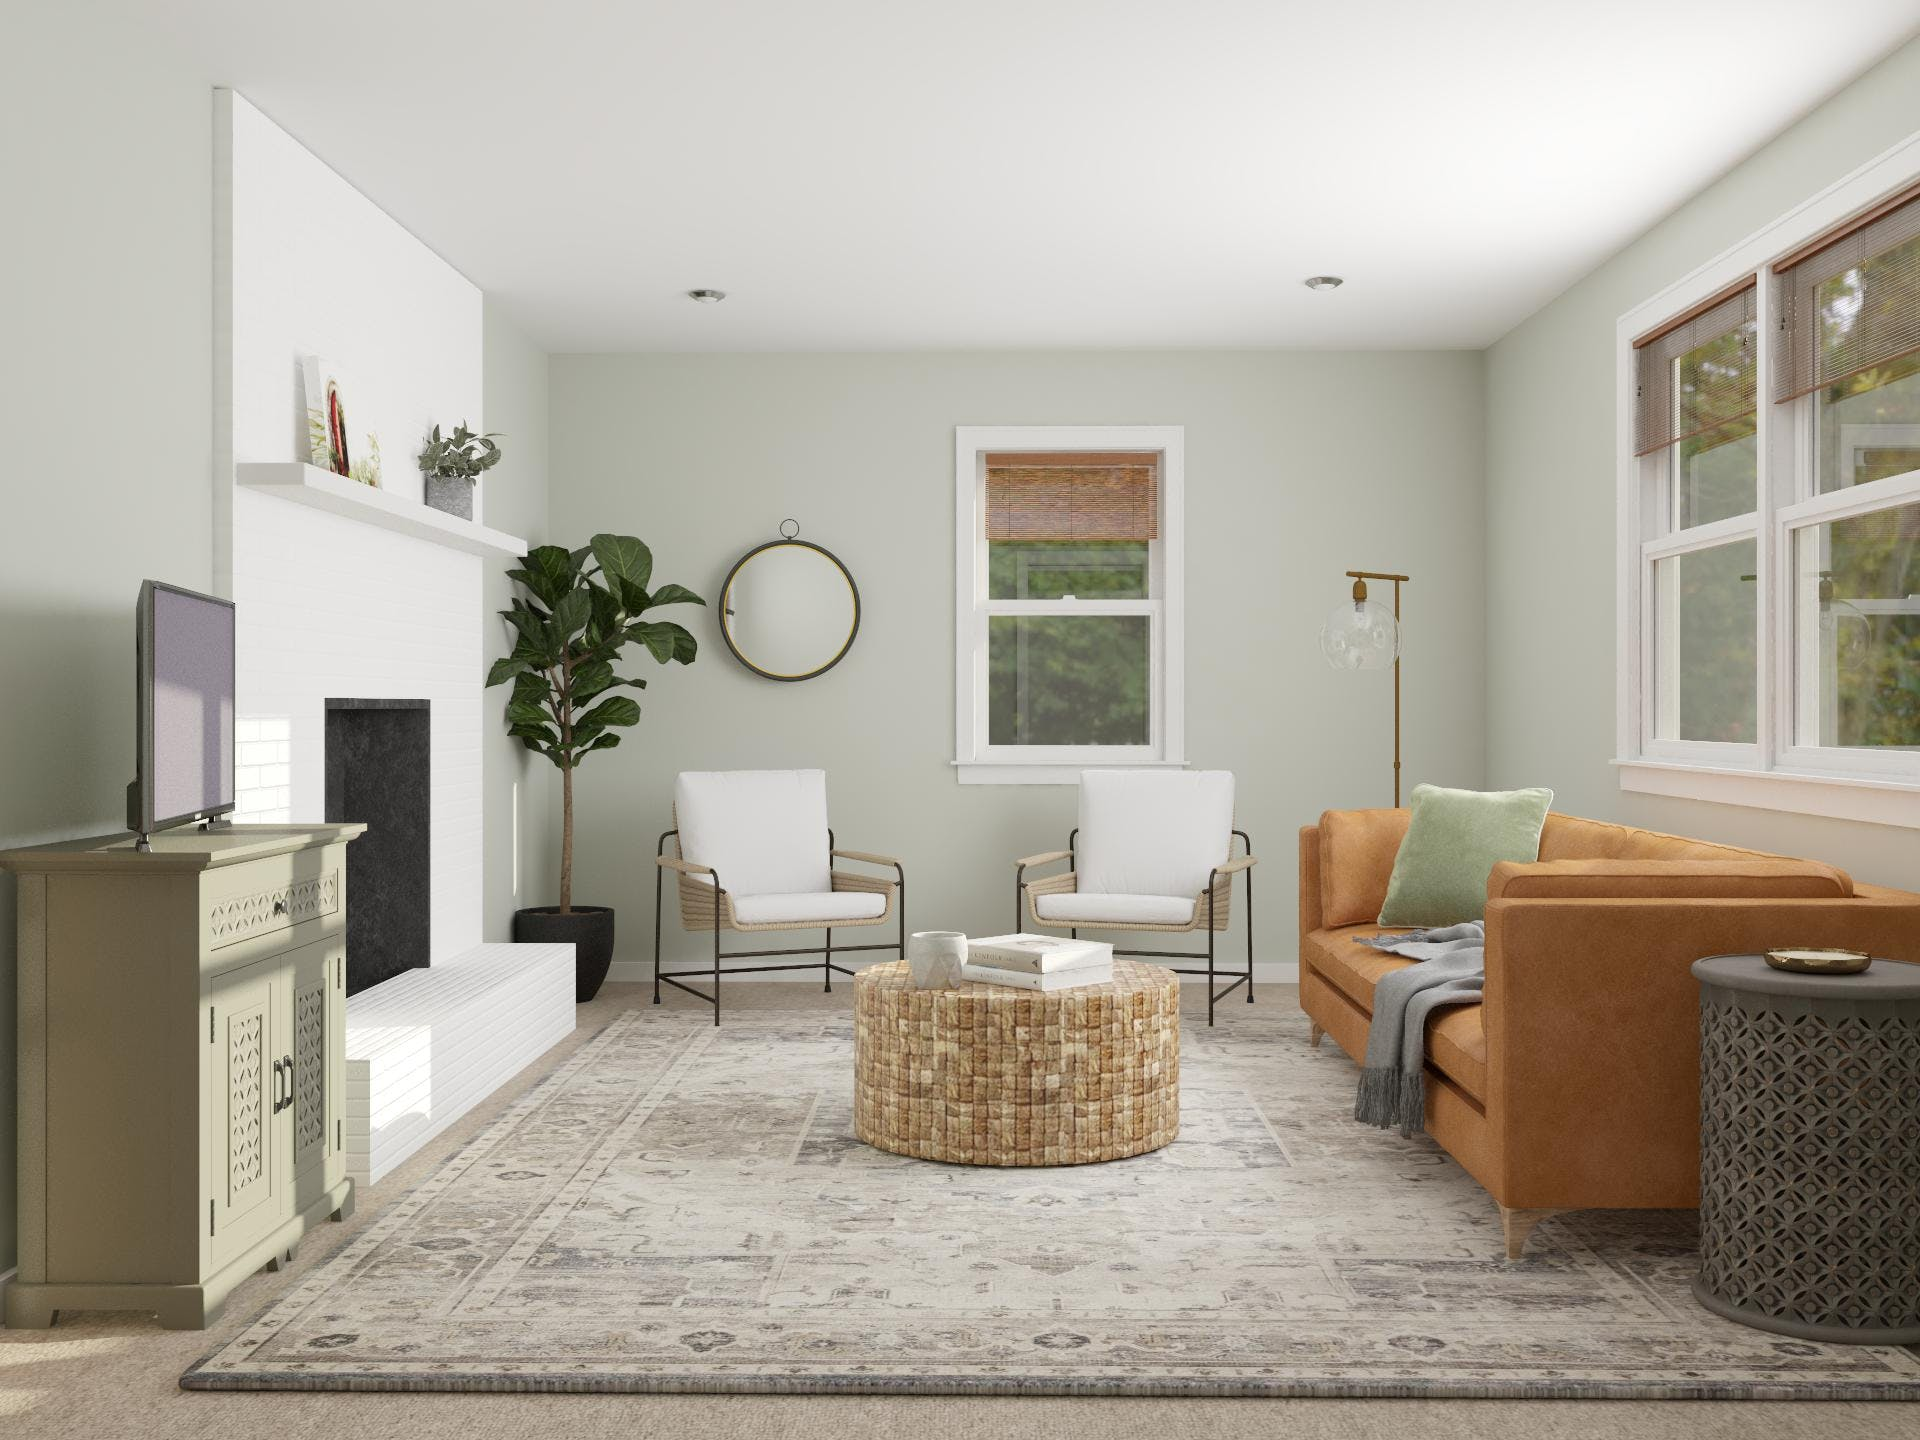 Light and Airy Neutral Colored Living Room With Modern Eclectic Style